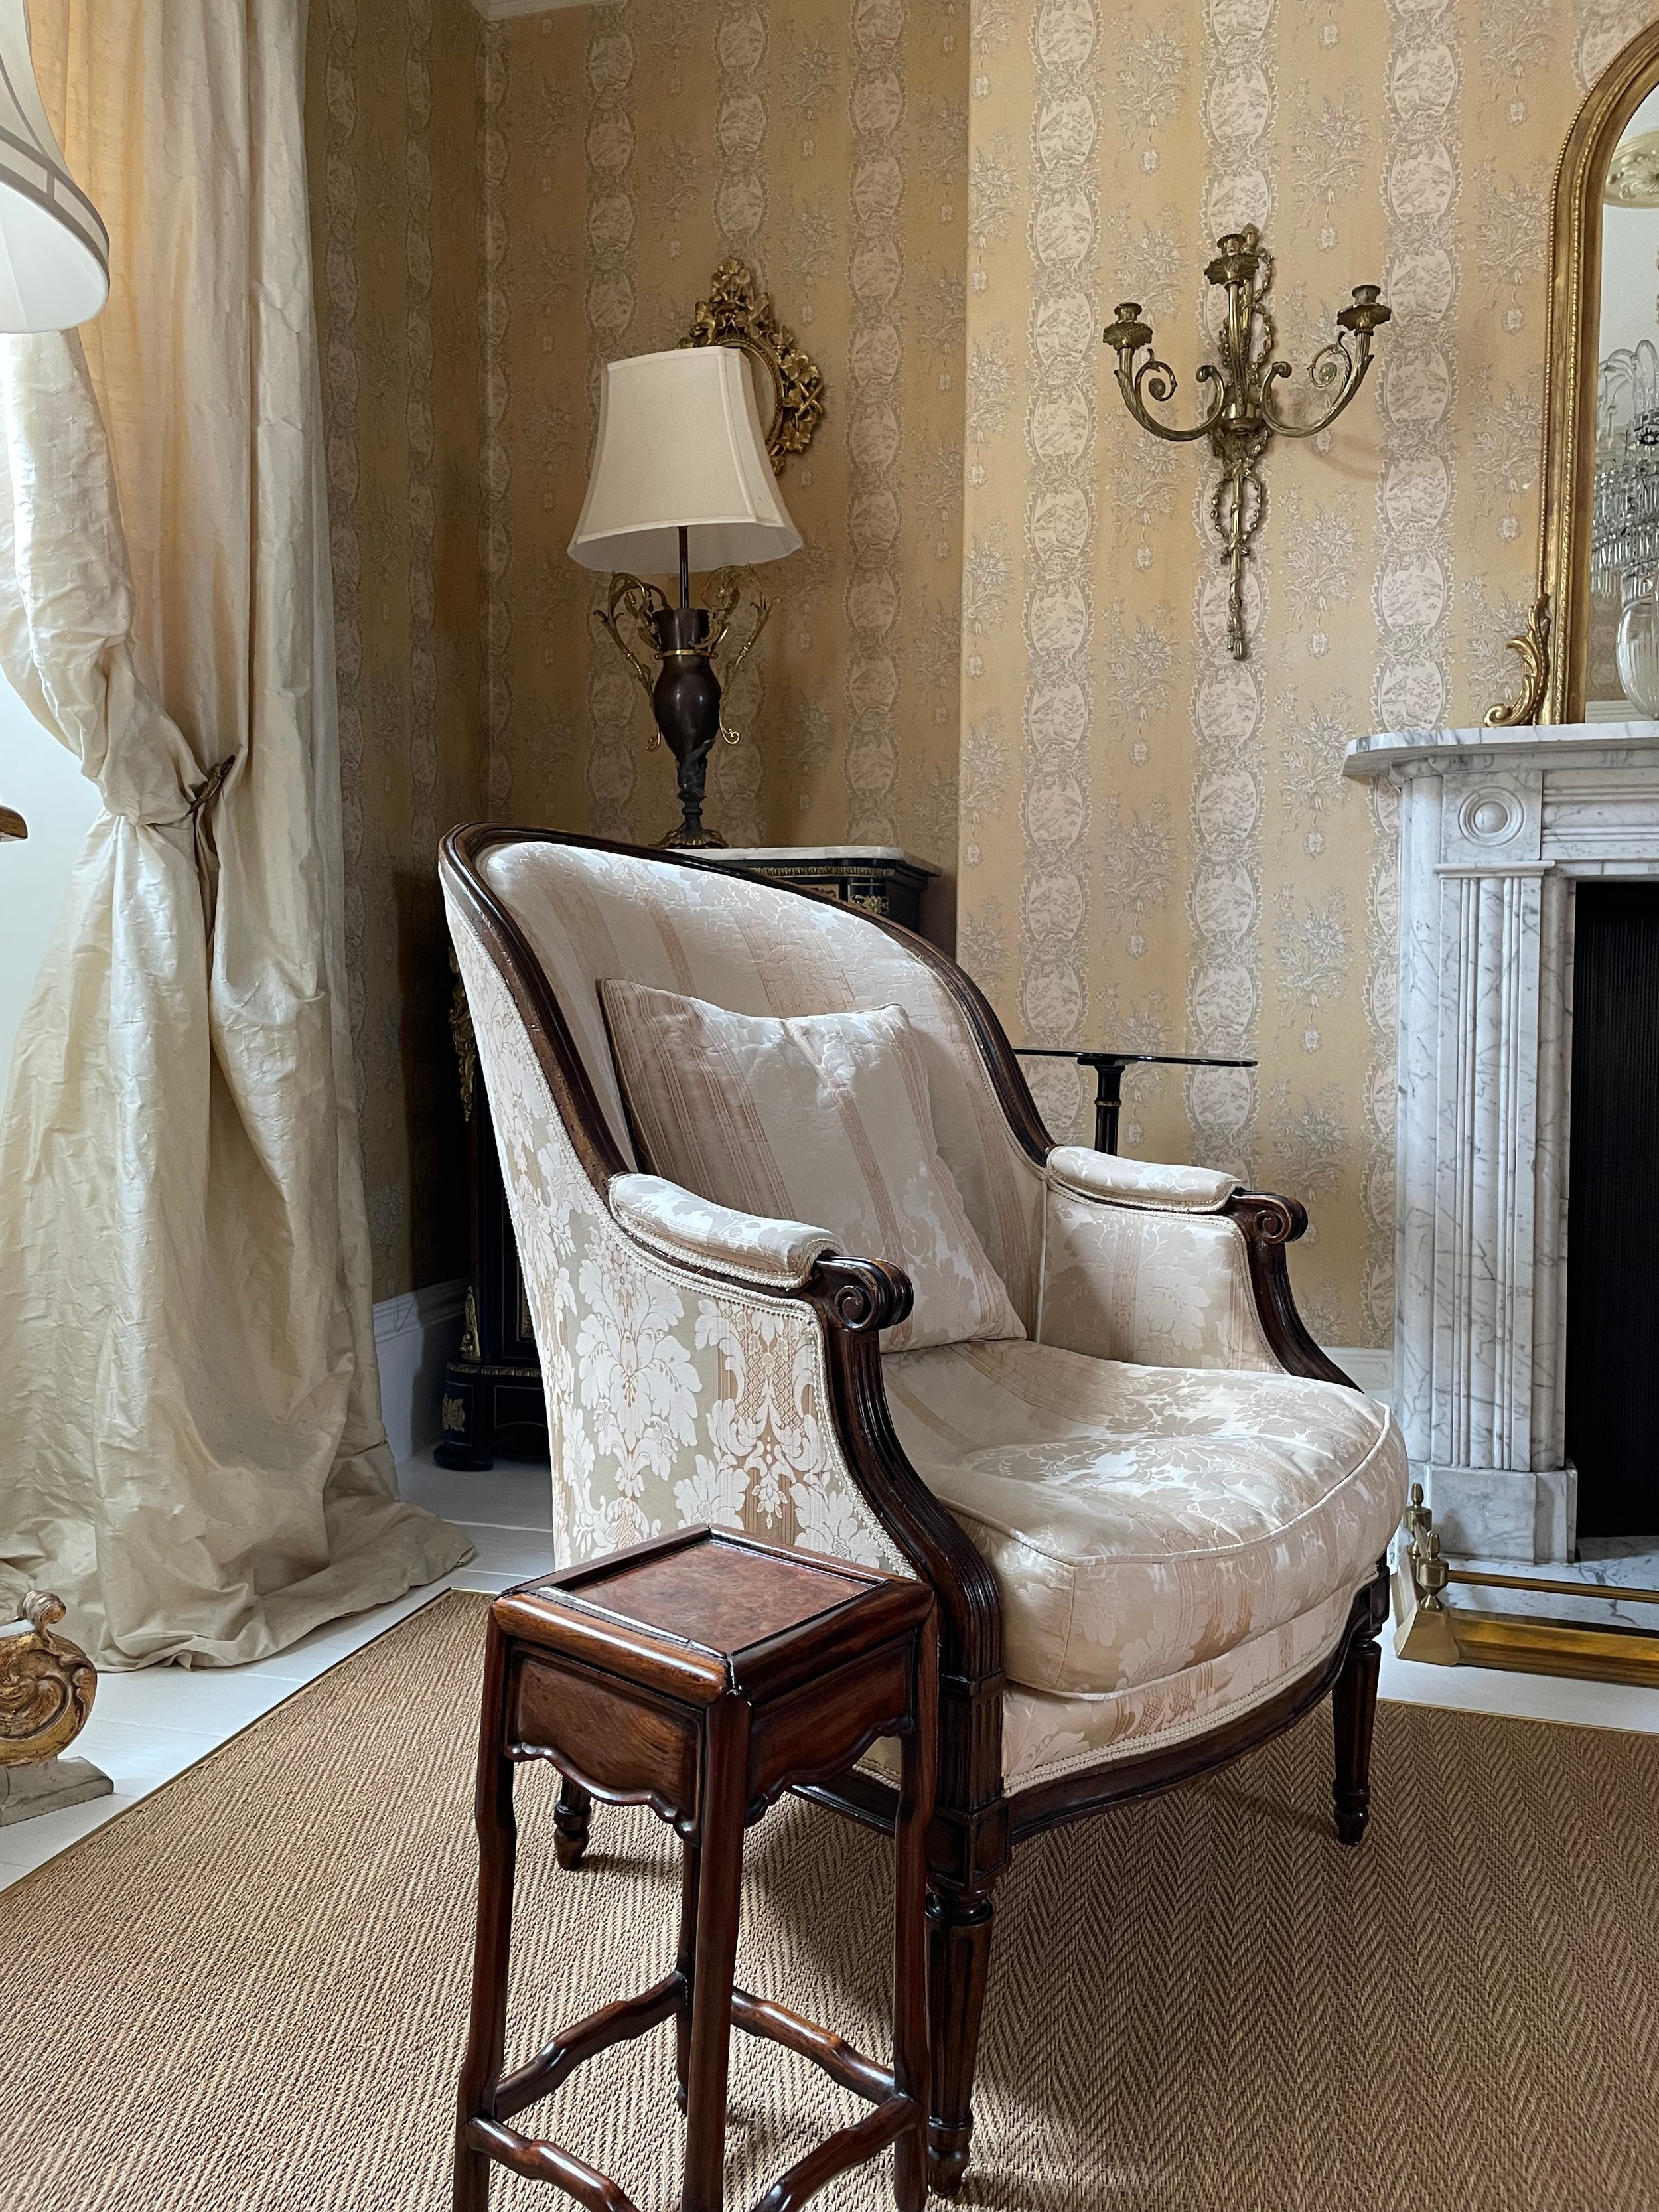 Late 18th century French walnut framed armchair, with damask upholstery with scrolling arms and - Image 3 of 3